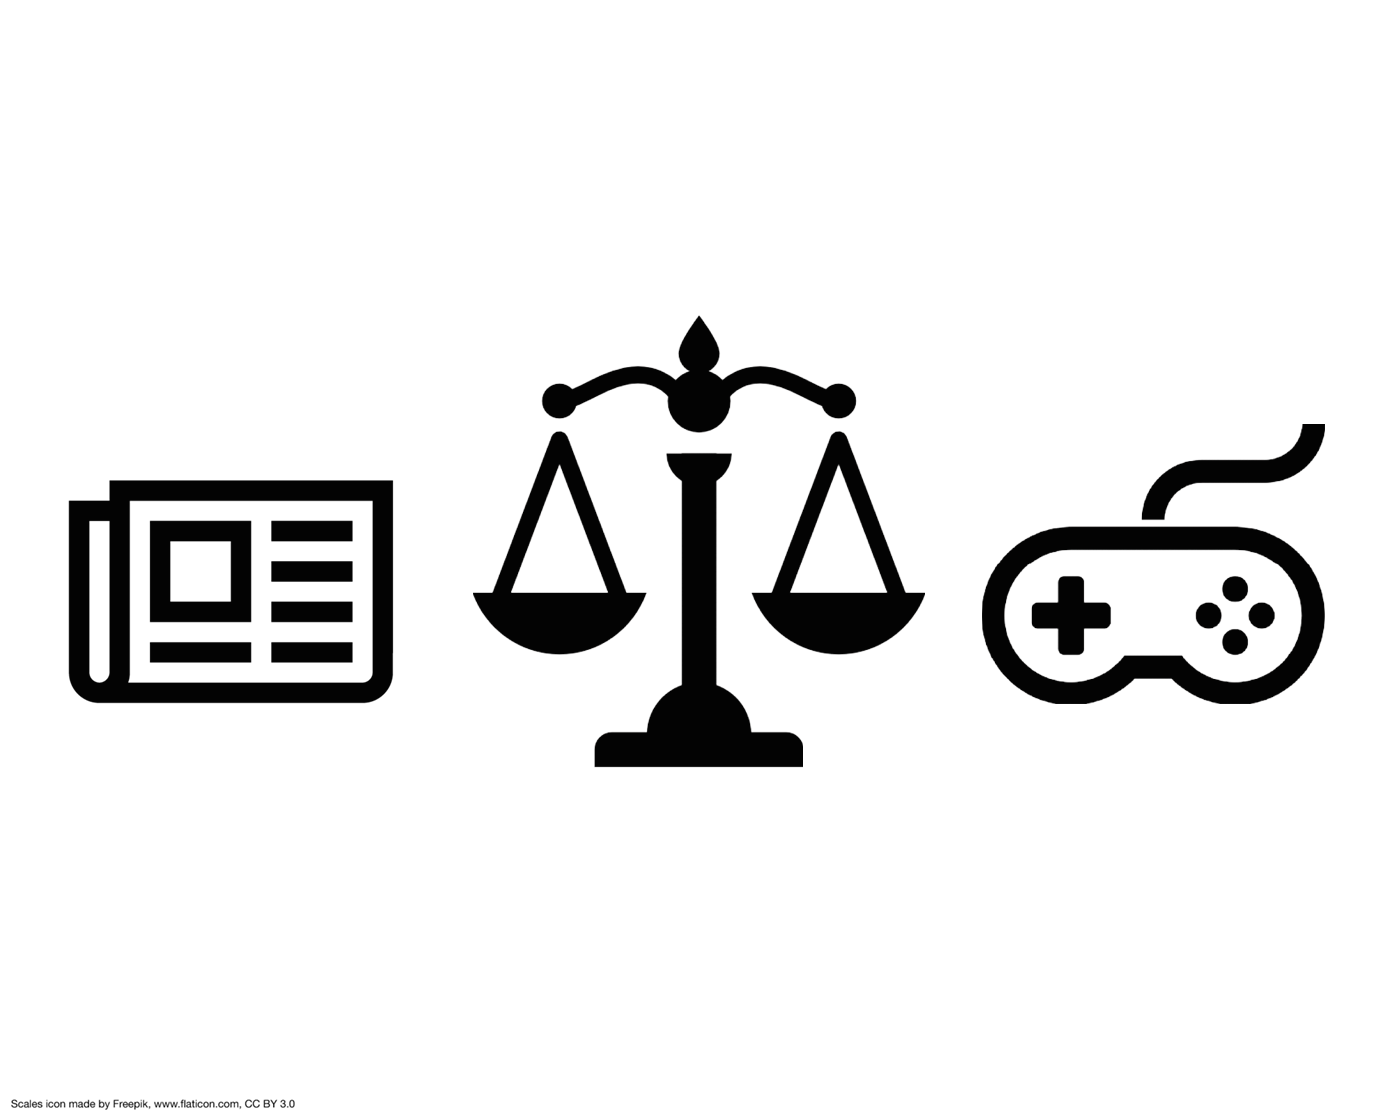 Honesty clipart justice. Video games journalism and